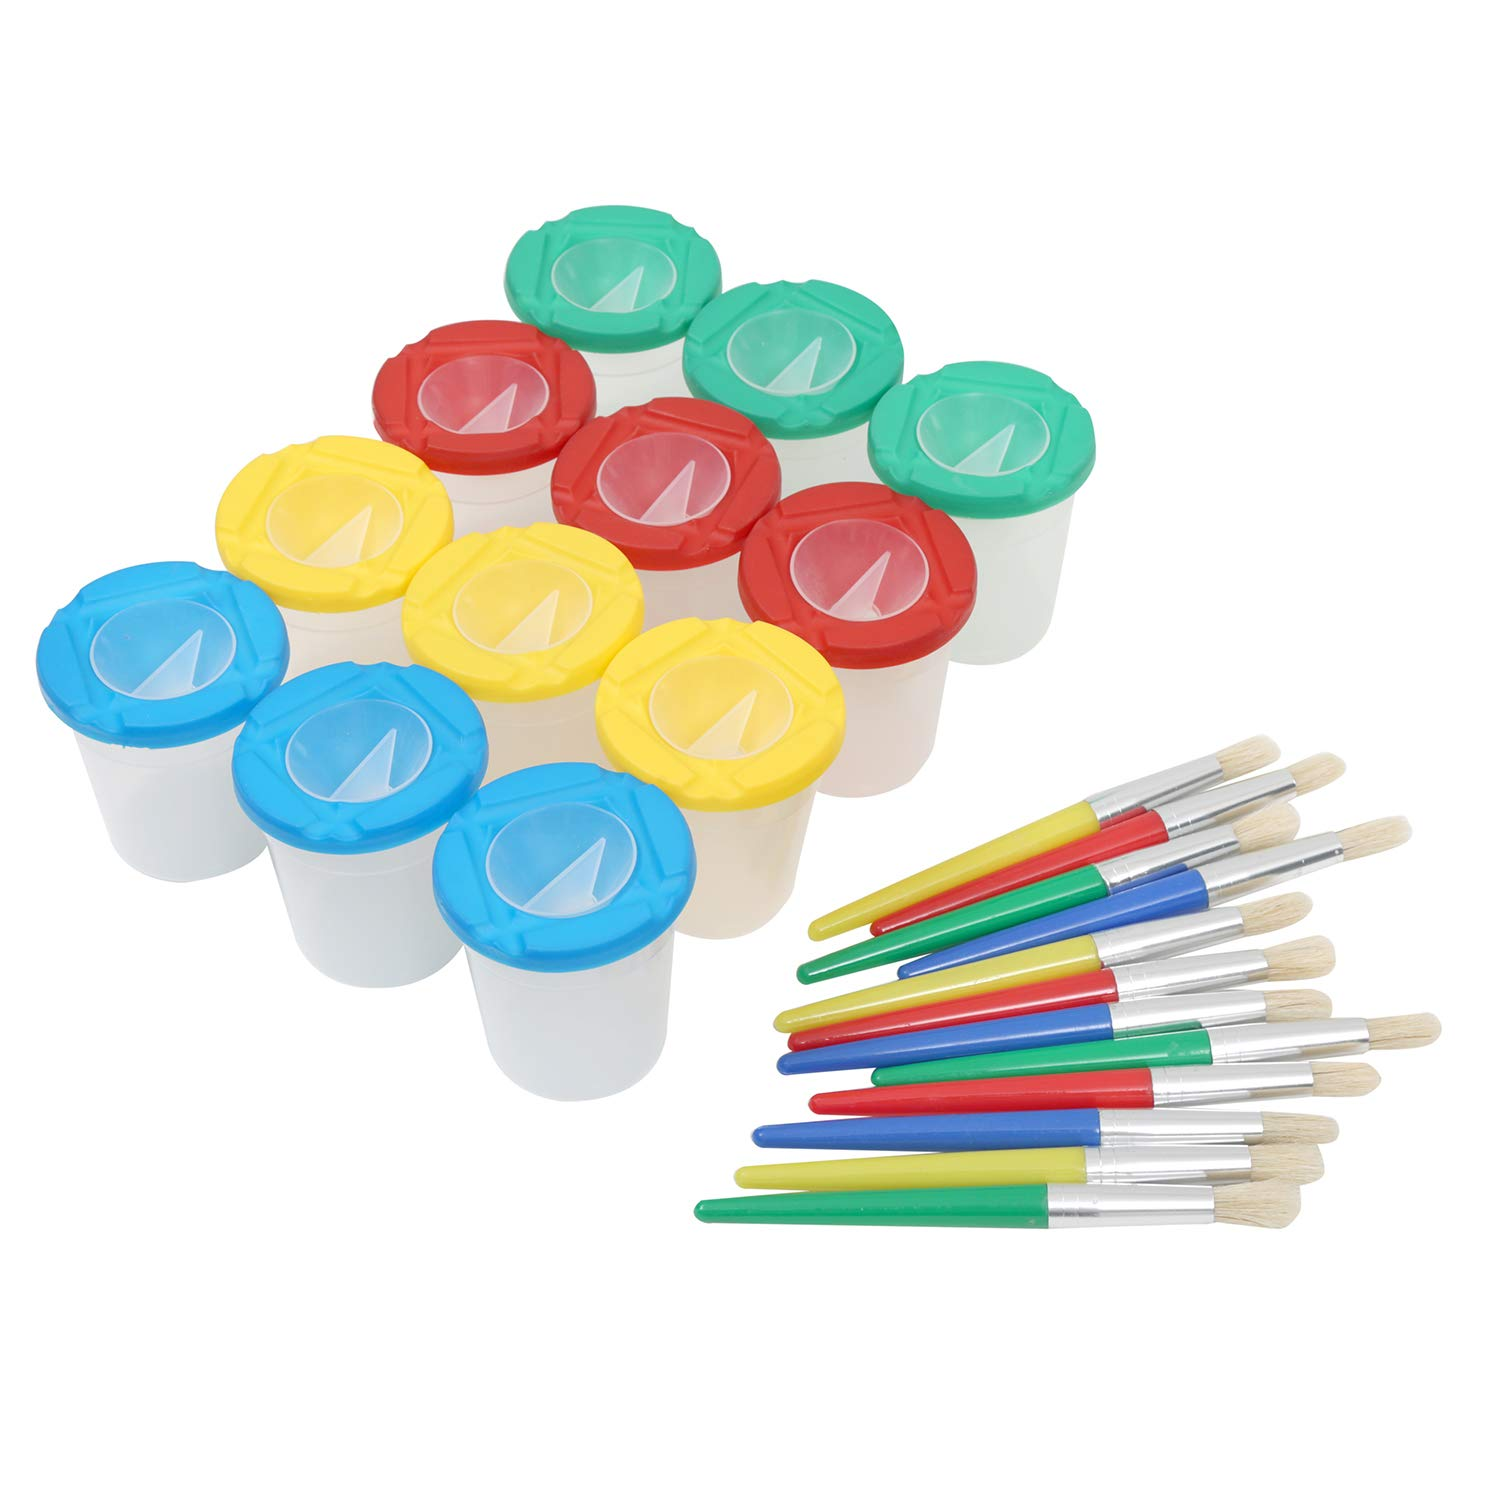 MEEDEN 12 Piece Children's No Spill Paint Cups 3.3inches Tall with Colored Lids and 12 Piece Round Brush Set, 3inches in Diameter by MEEDEN